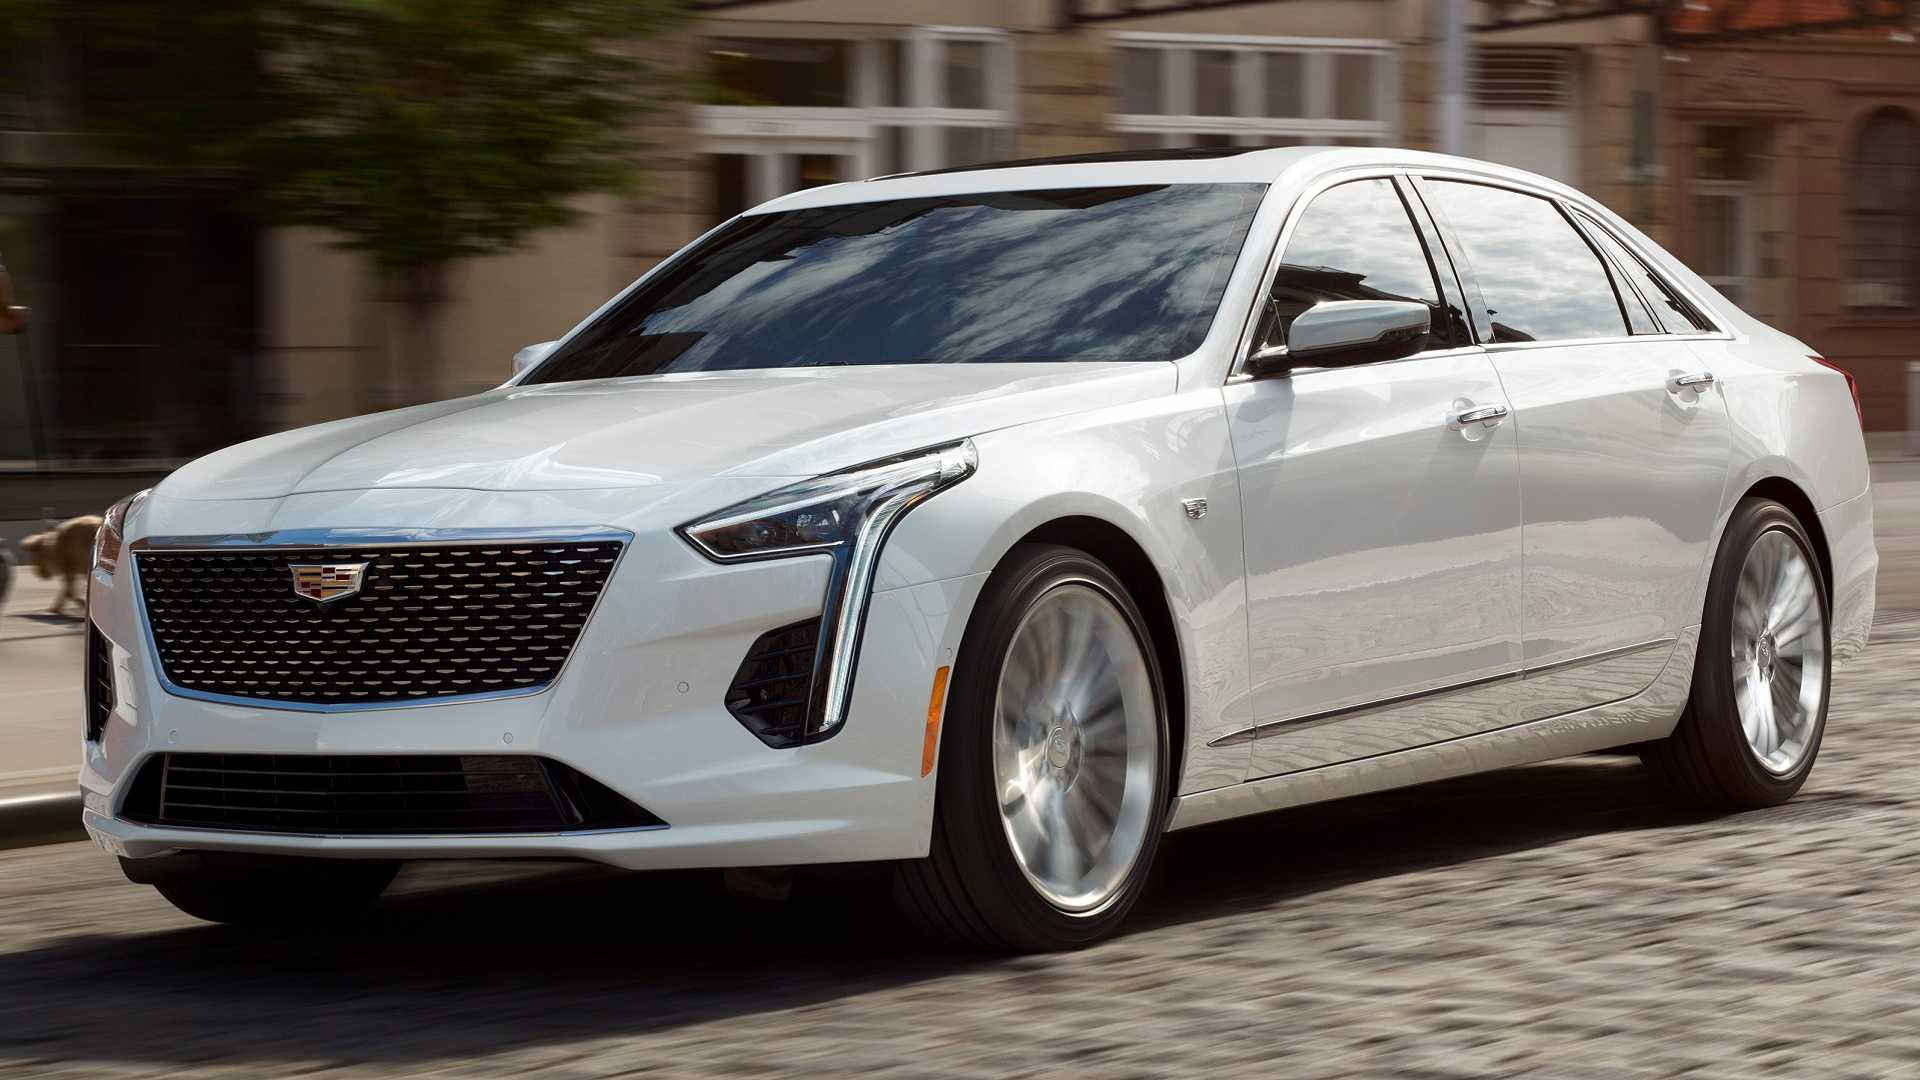 14 All New 2020 Cadillac Ct6 V8 Release Date by 2020 Cadillac Ct6 V8